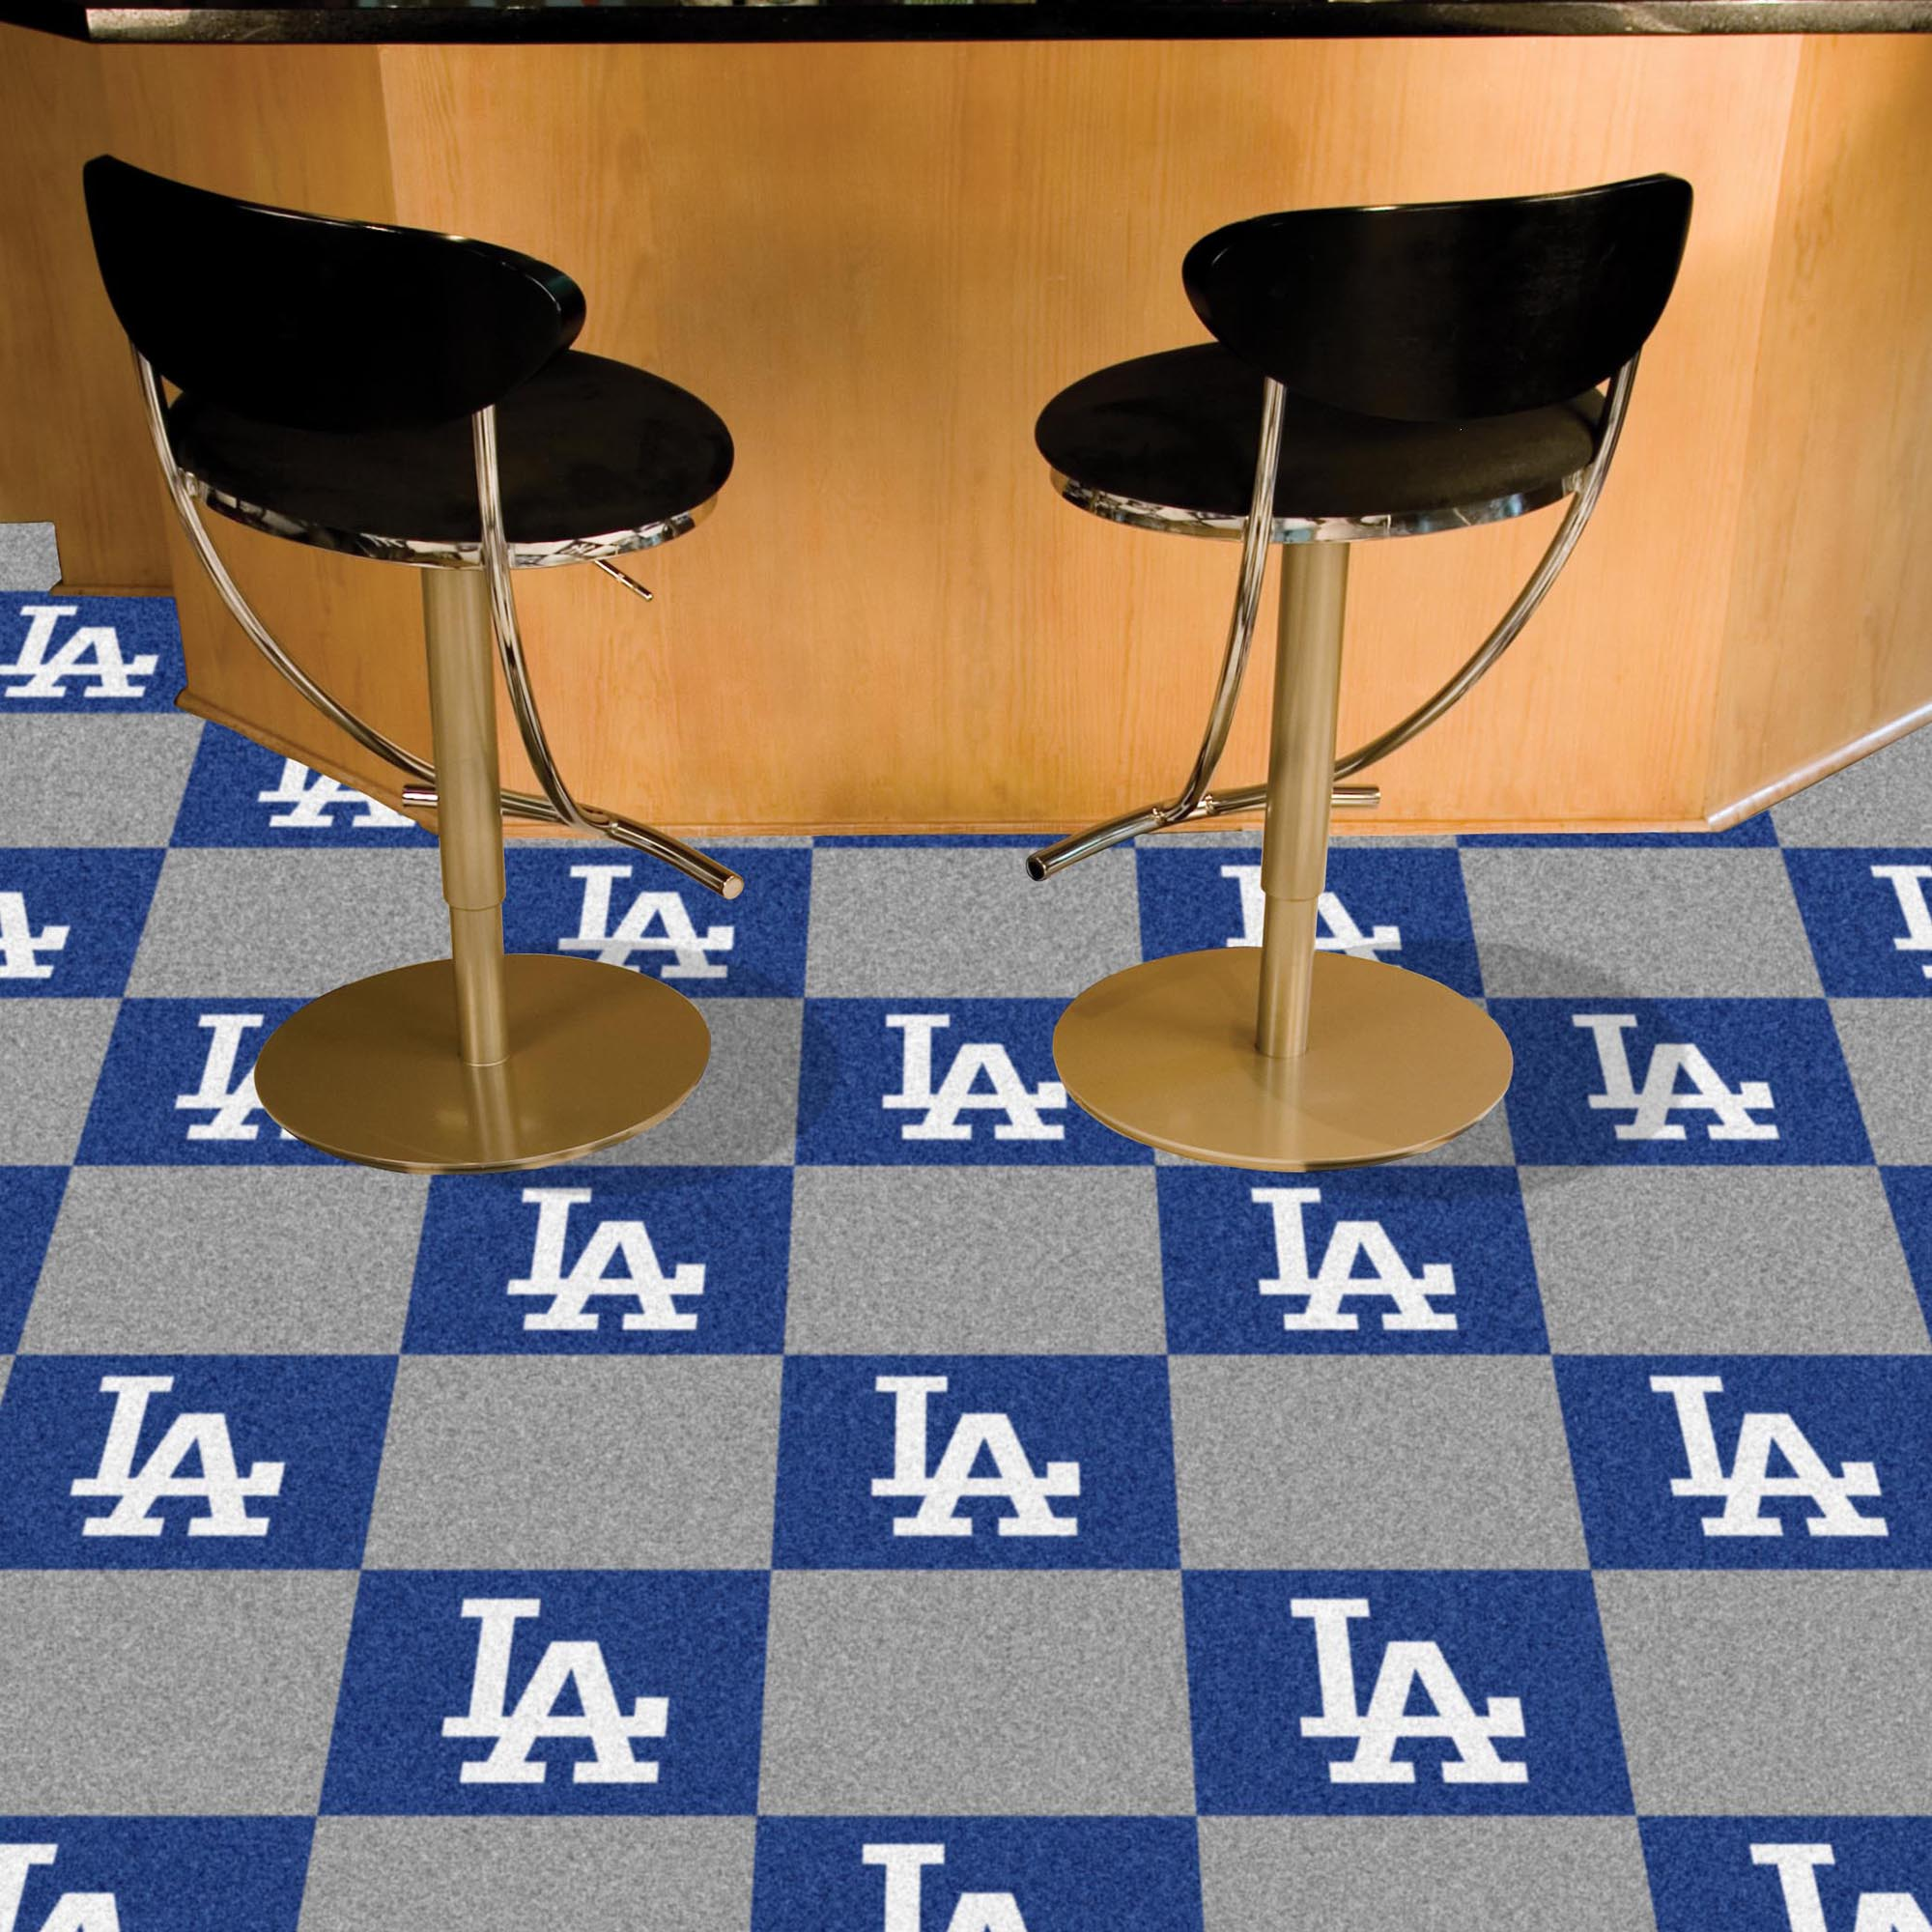 Los Angeles Dodgers Carpet Tiles 18x18 in.